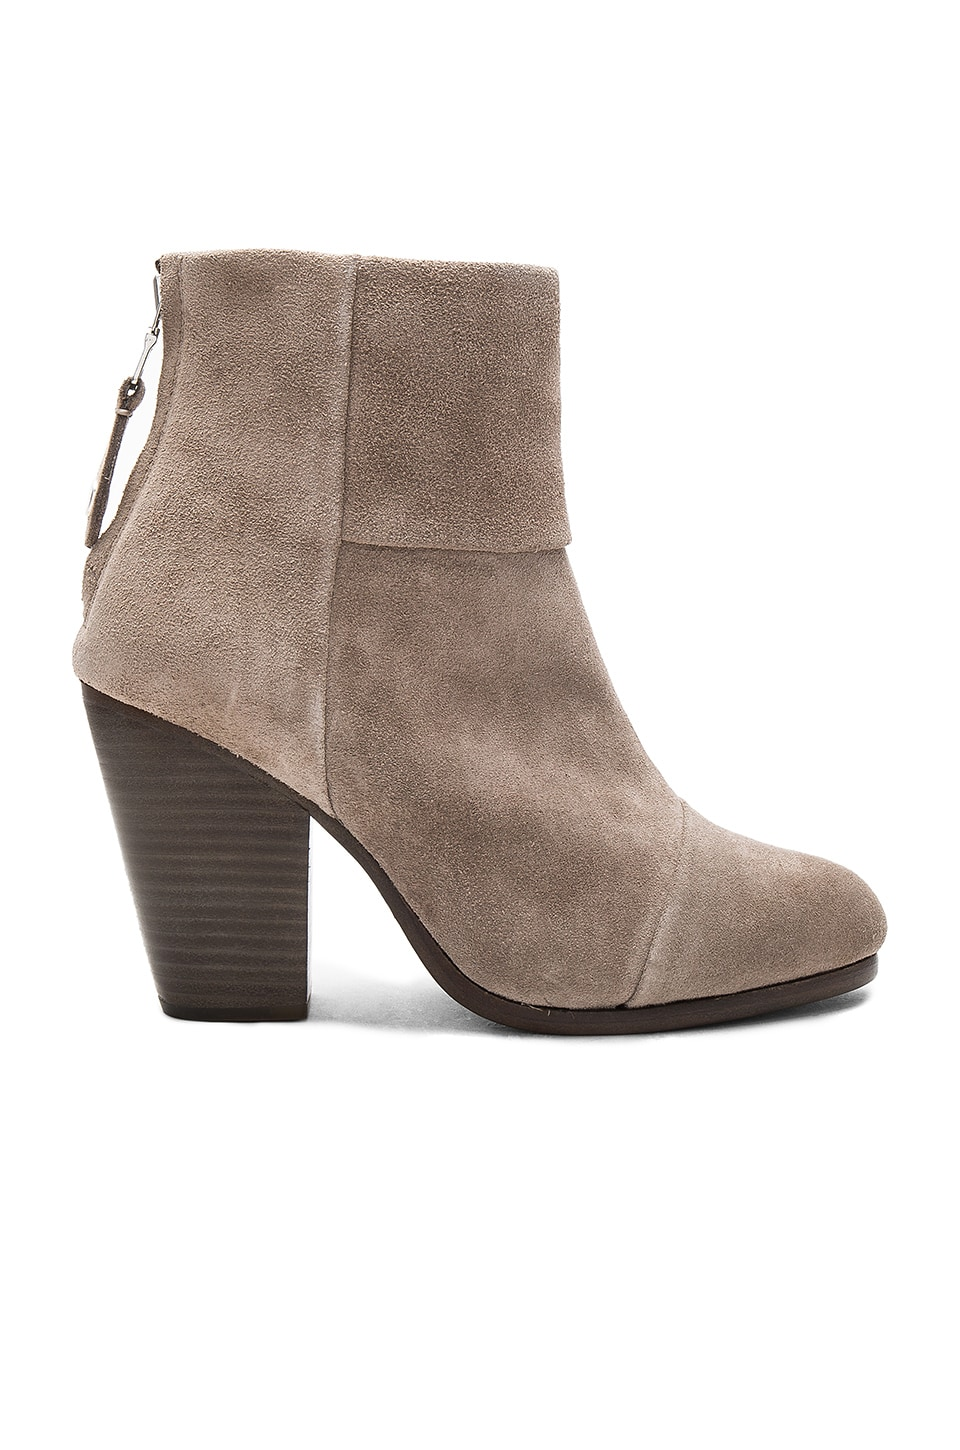 Rag & Bone Classic Newbury Bootie in Warm Grey Suede